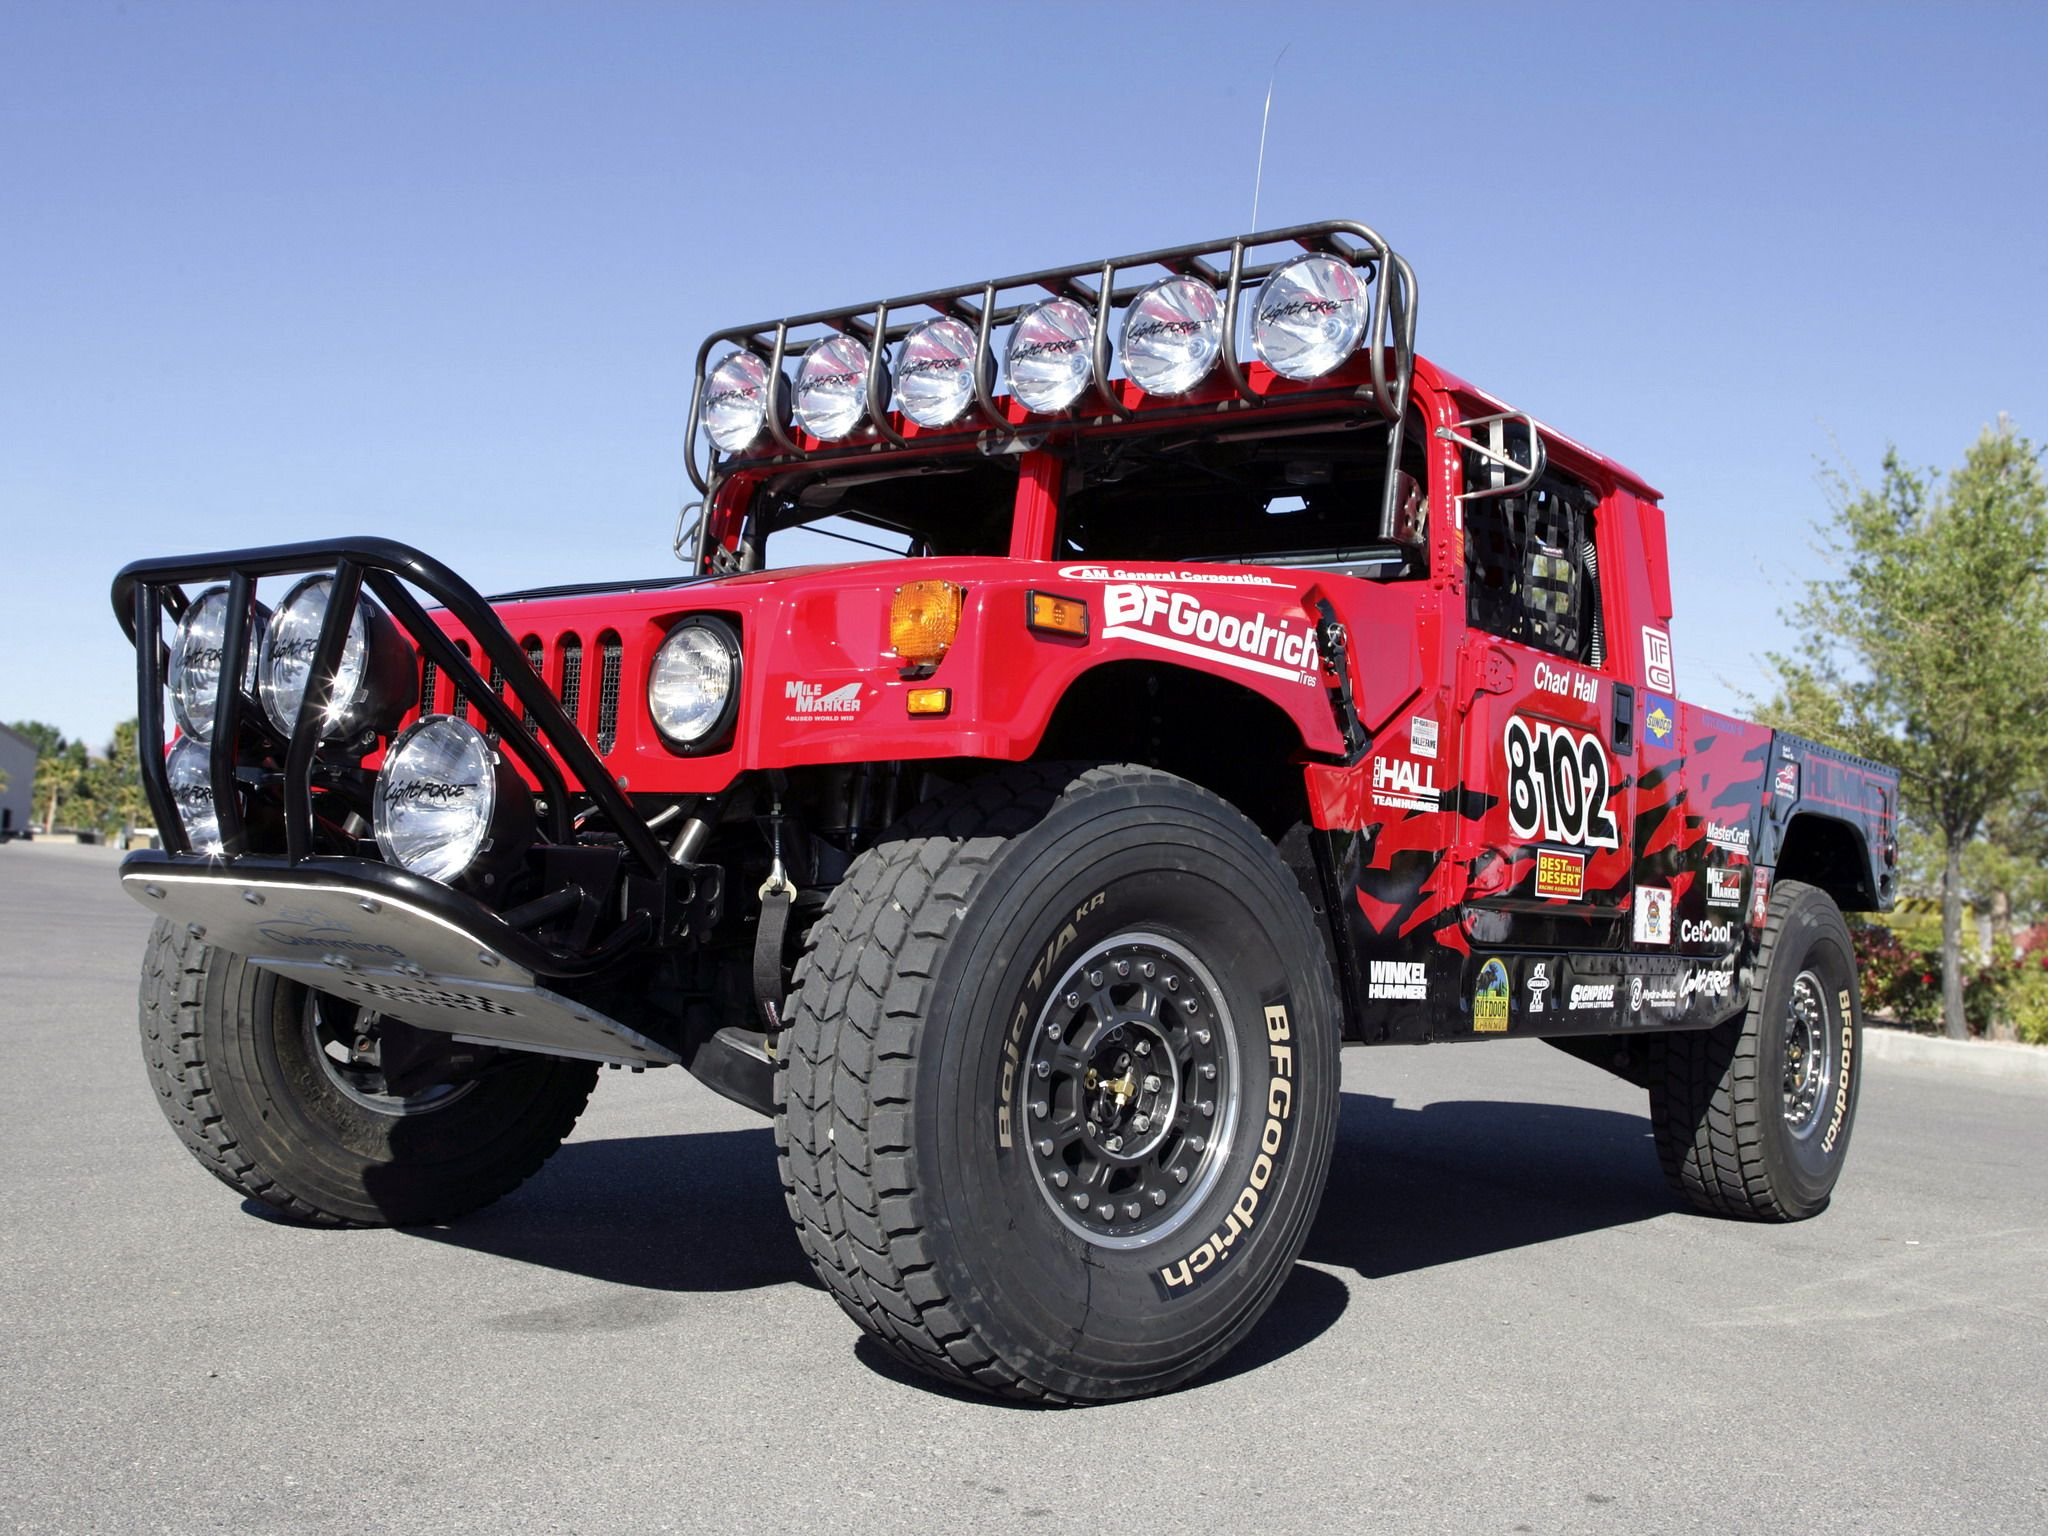 2006 hummer h1 alpha rally truck offroad 4x4 vehicles 2006 hummer h1 alpha rally truck offroad 4x4 vanachro Choice Image